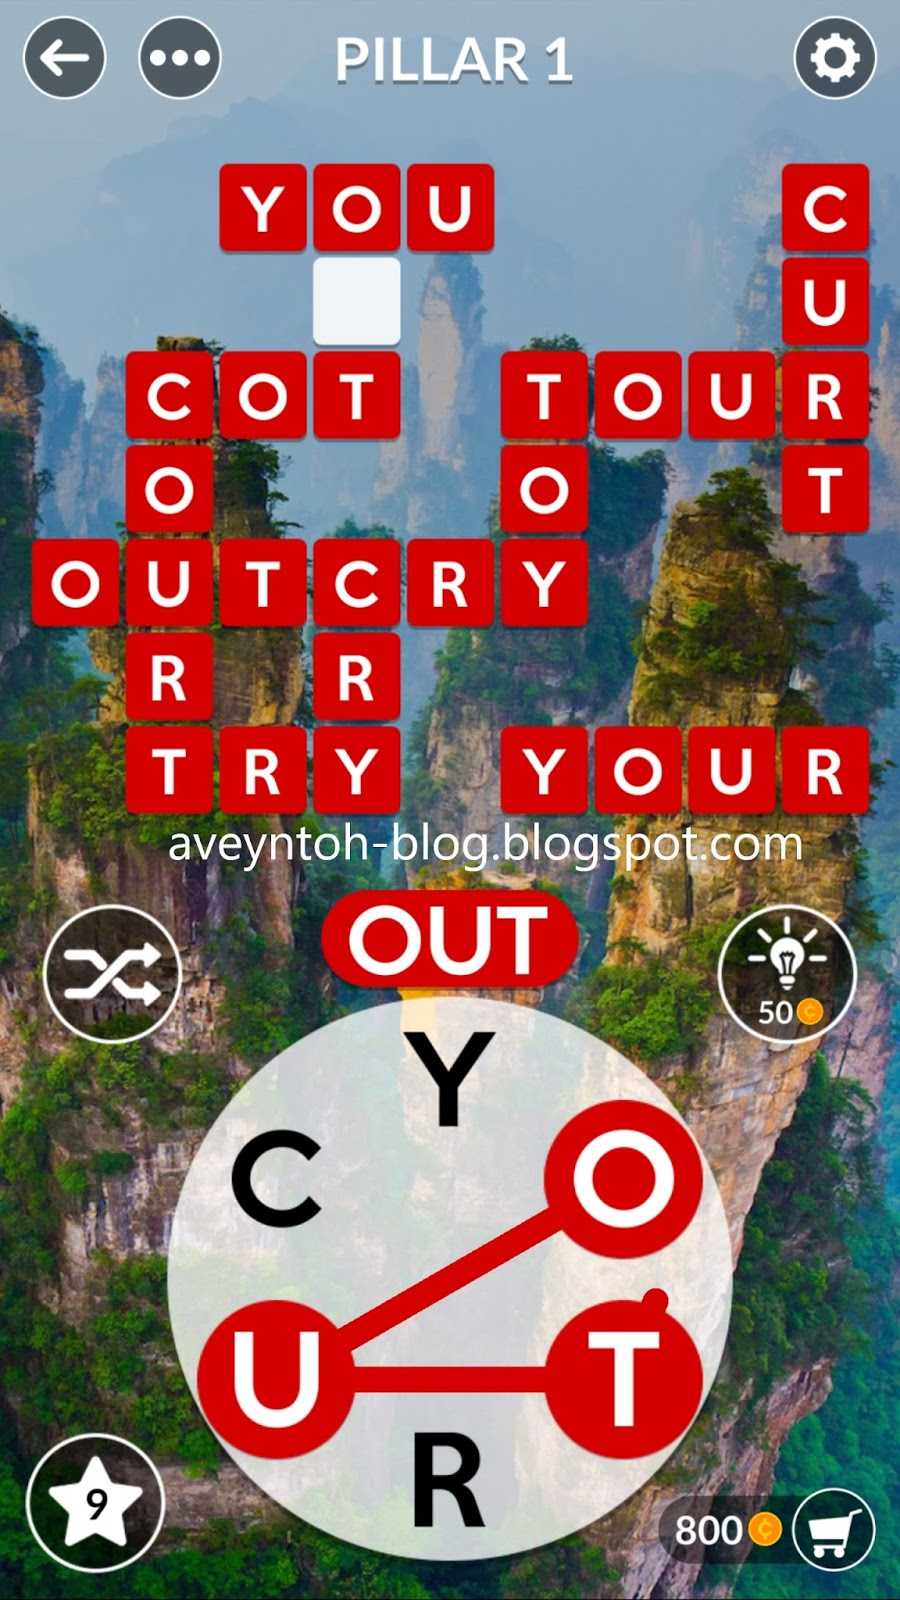 Bonus Word S Cor Cur Our Rot Tory Yurt Coy Rout Rut